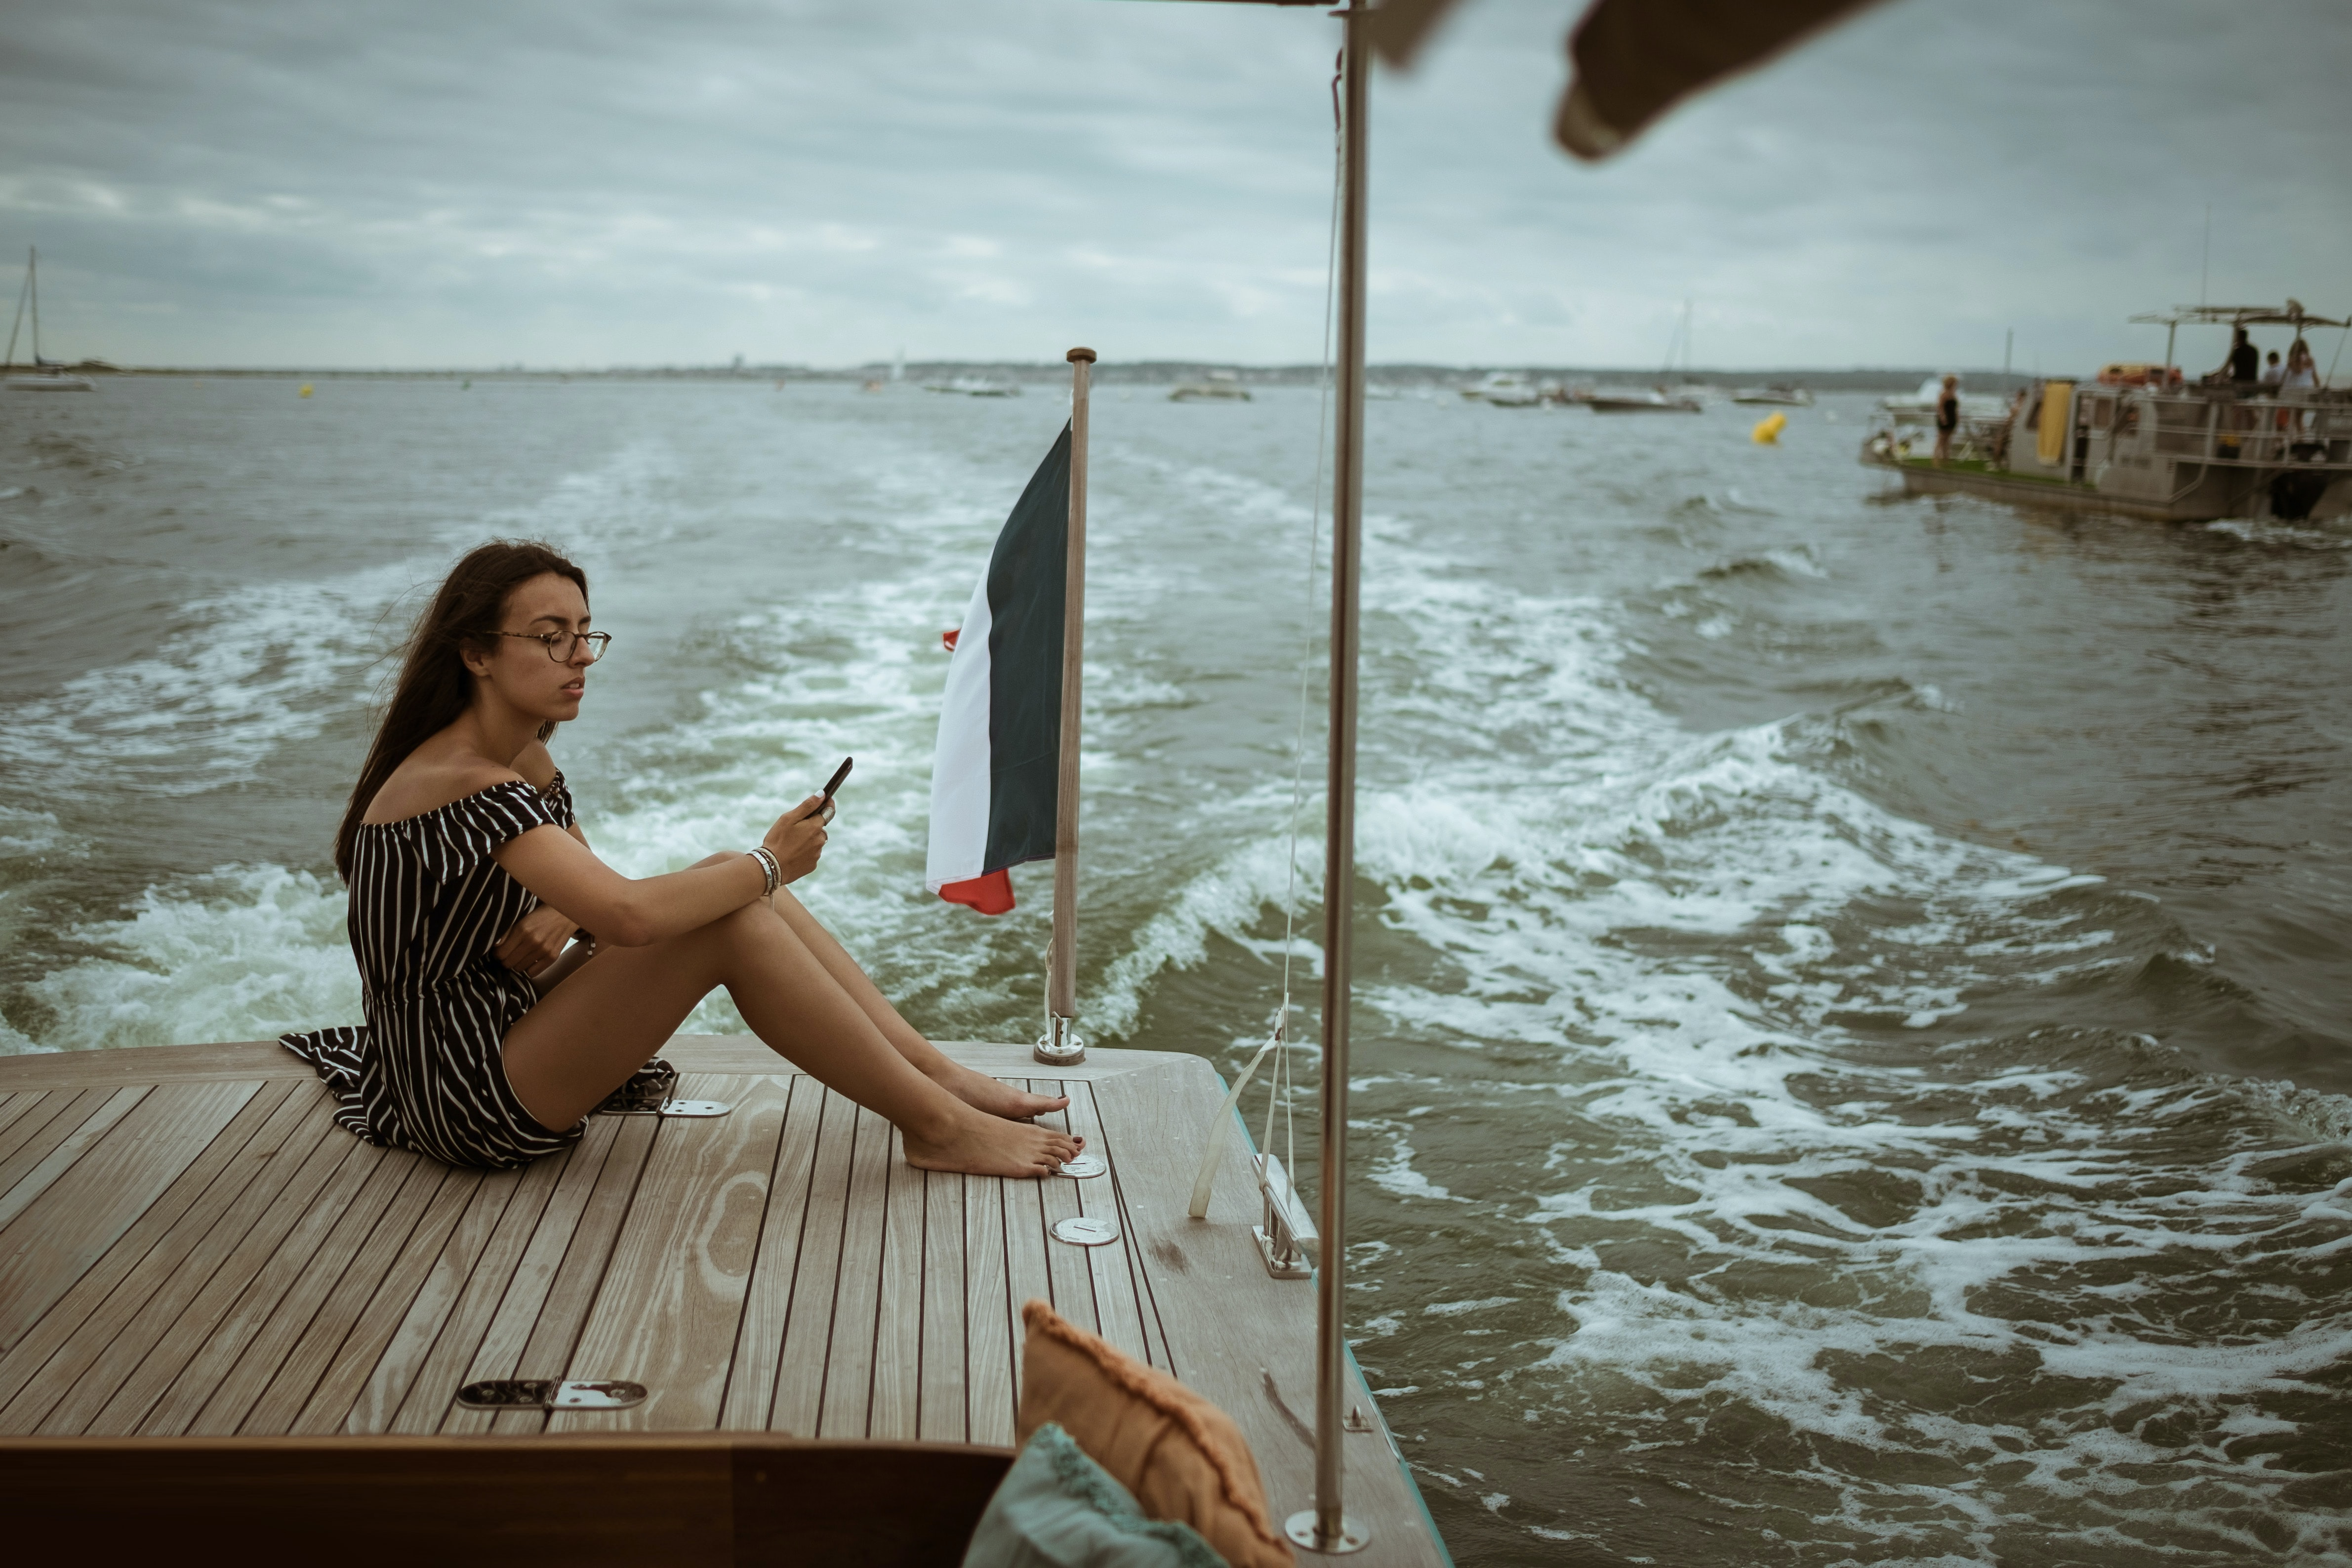 woman sitting on wooden deck above body of water